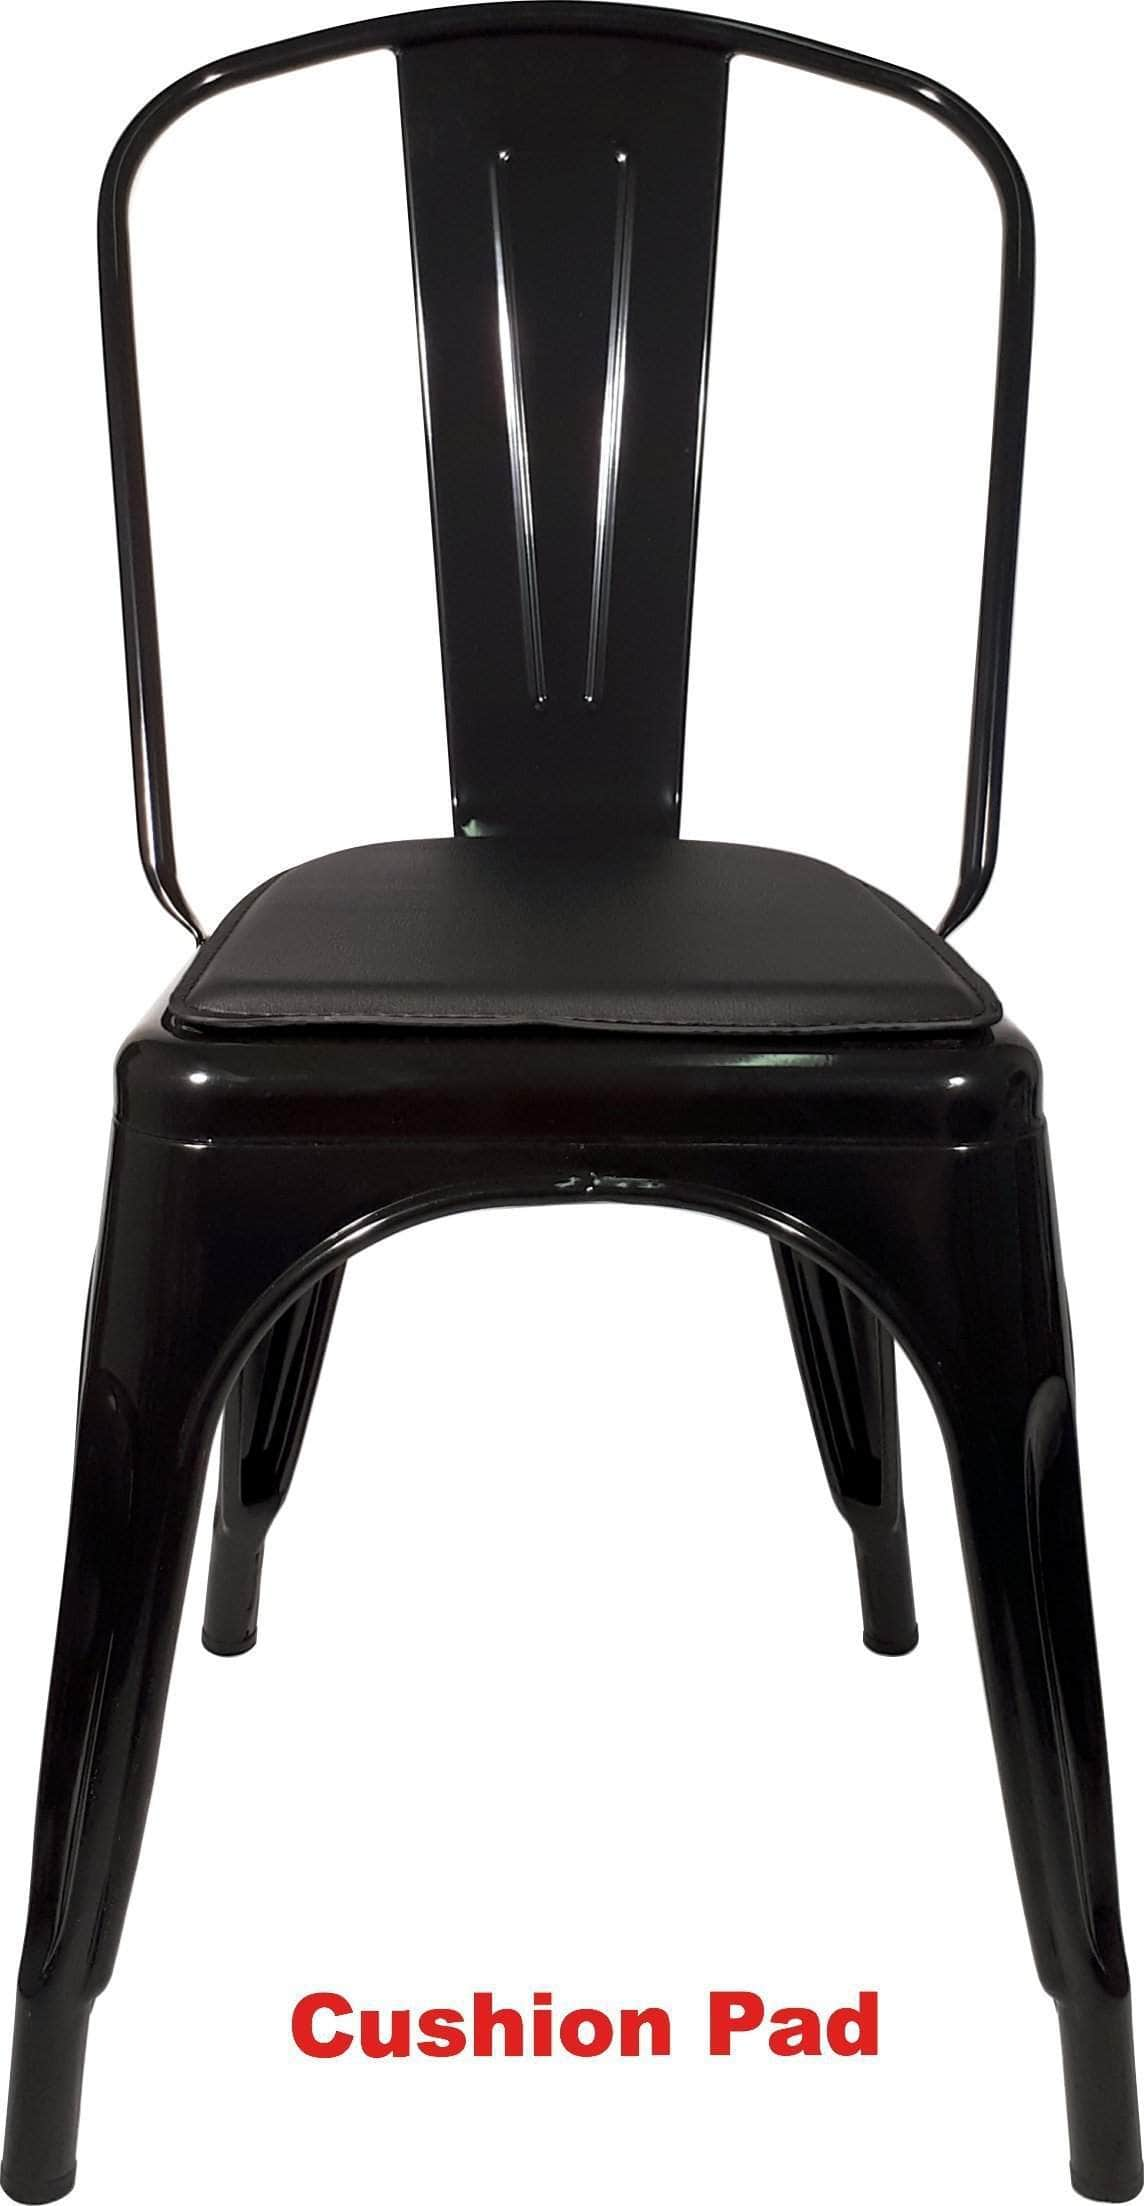 Gloss Black Replica Tolix Cafe Chair High Back  sc 1 st  Directly2U & Gloss Black Replica Tolix Cafe Chair High Back - Buy Online ...